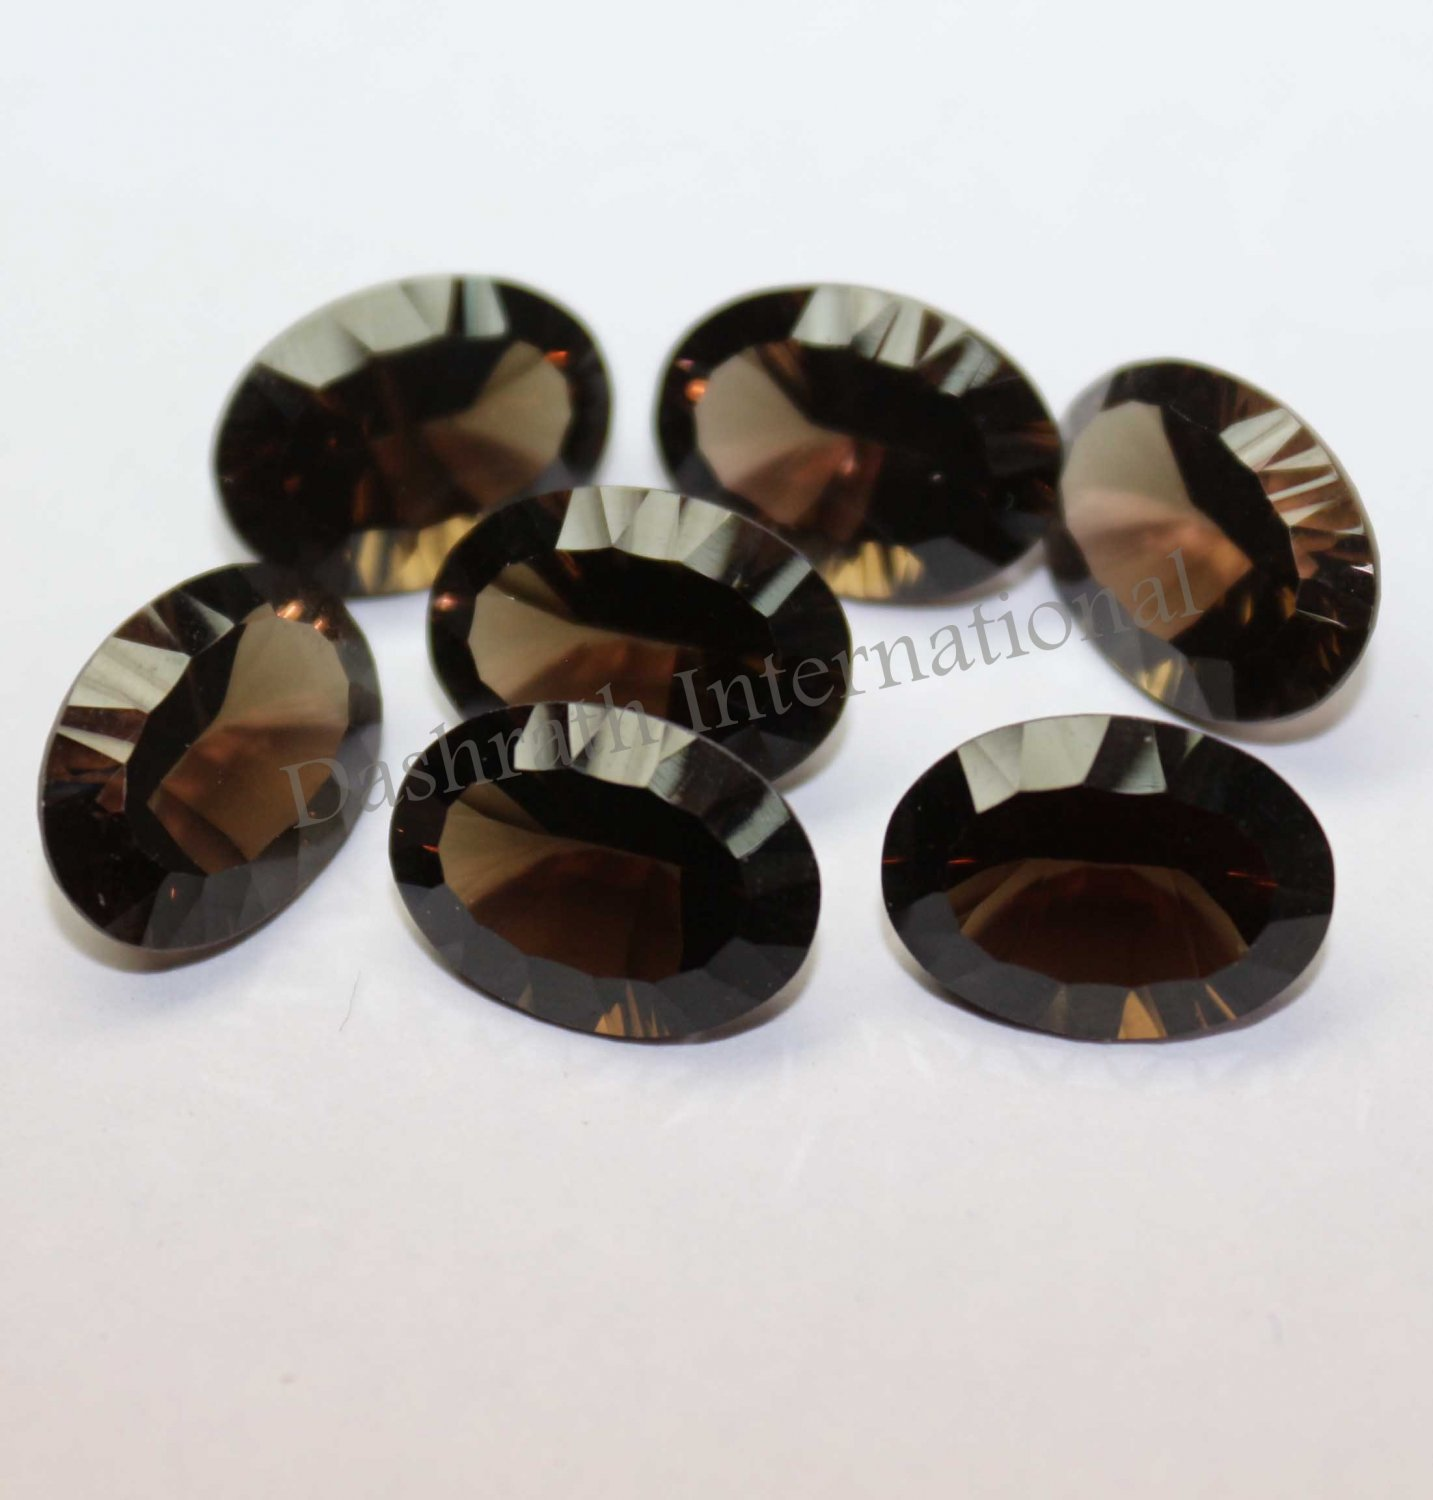 8x10mm Natural Smoky Quartz Concave Cut  Oval 100 Pieces Lot  (SI) Top Quality  Loose Gemstone